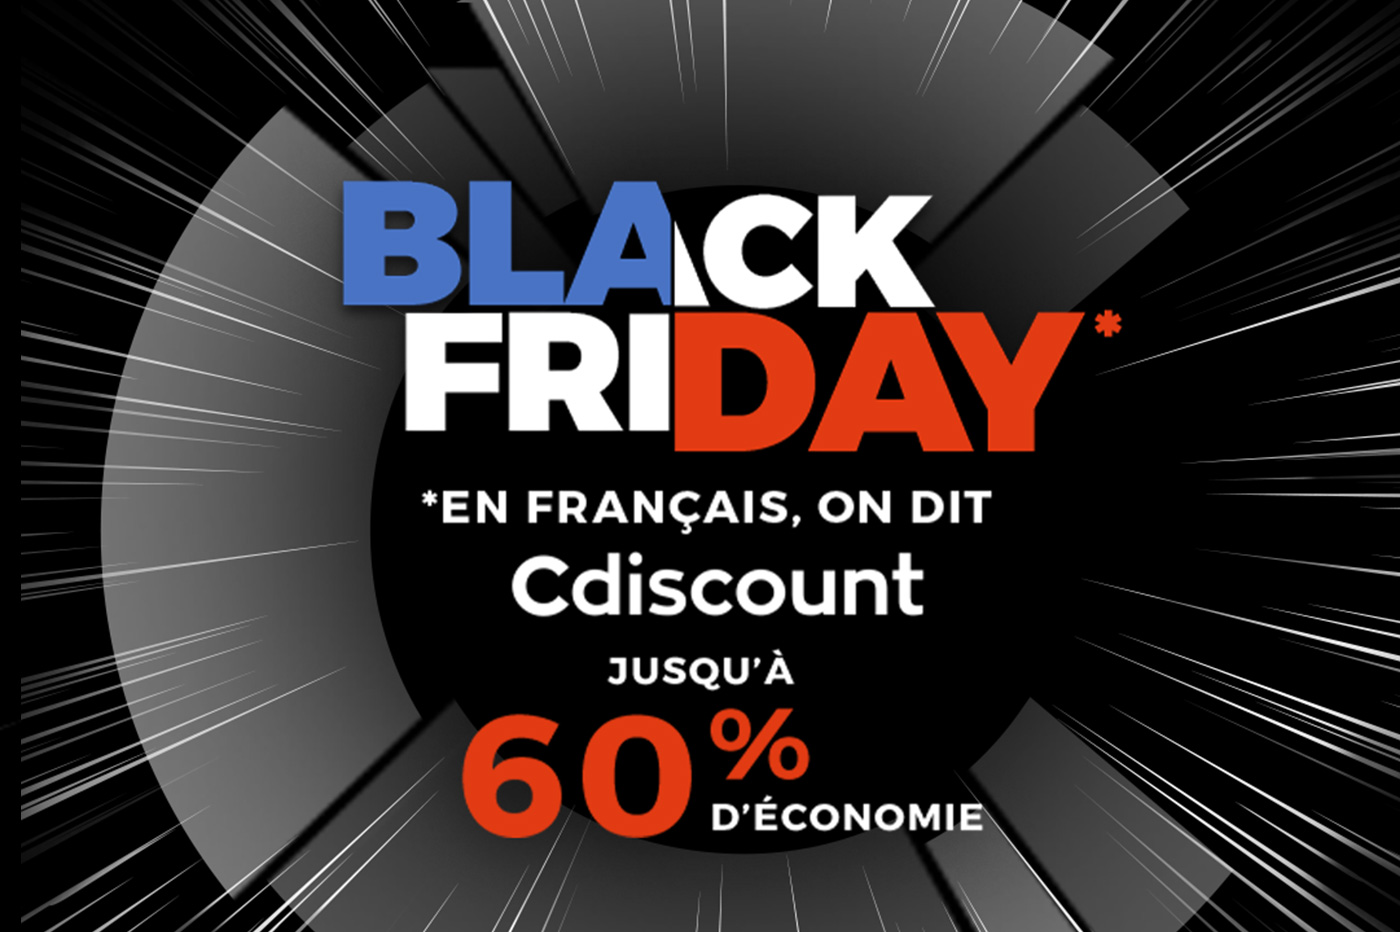 Black Friday Cdiscount